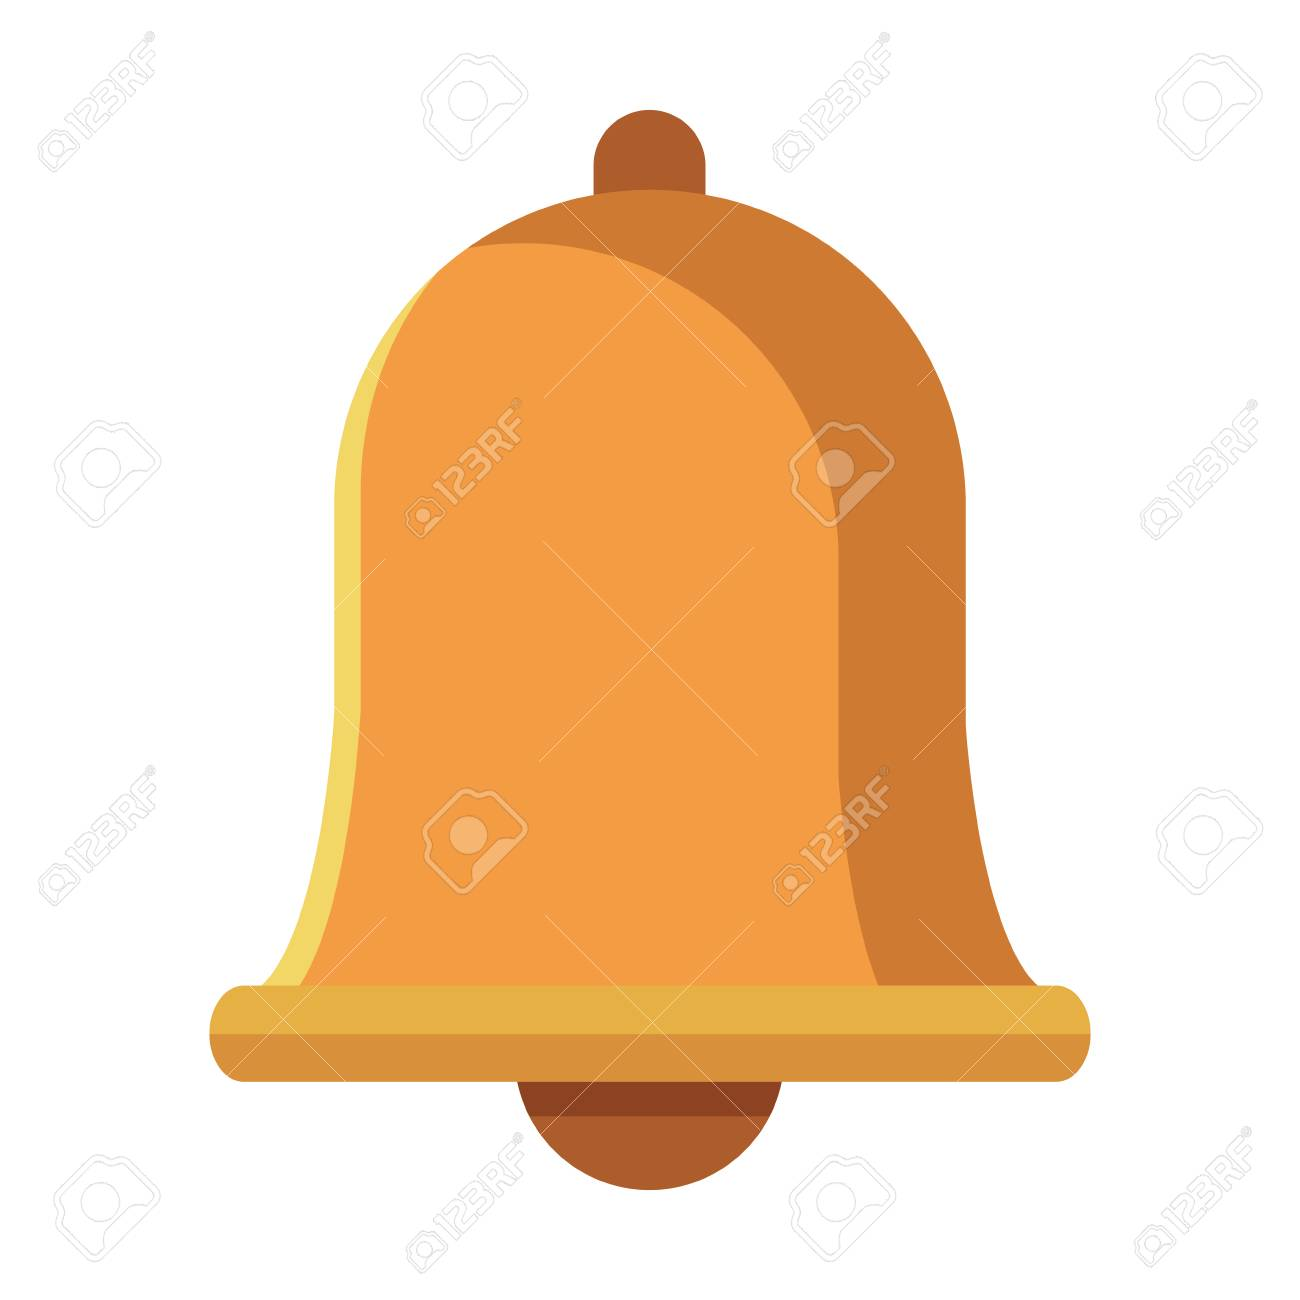 notification bell icon colorful in white background - 125999472